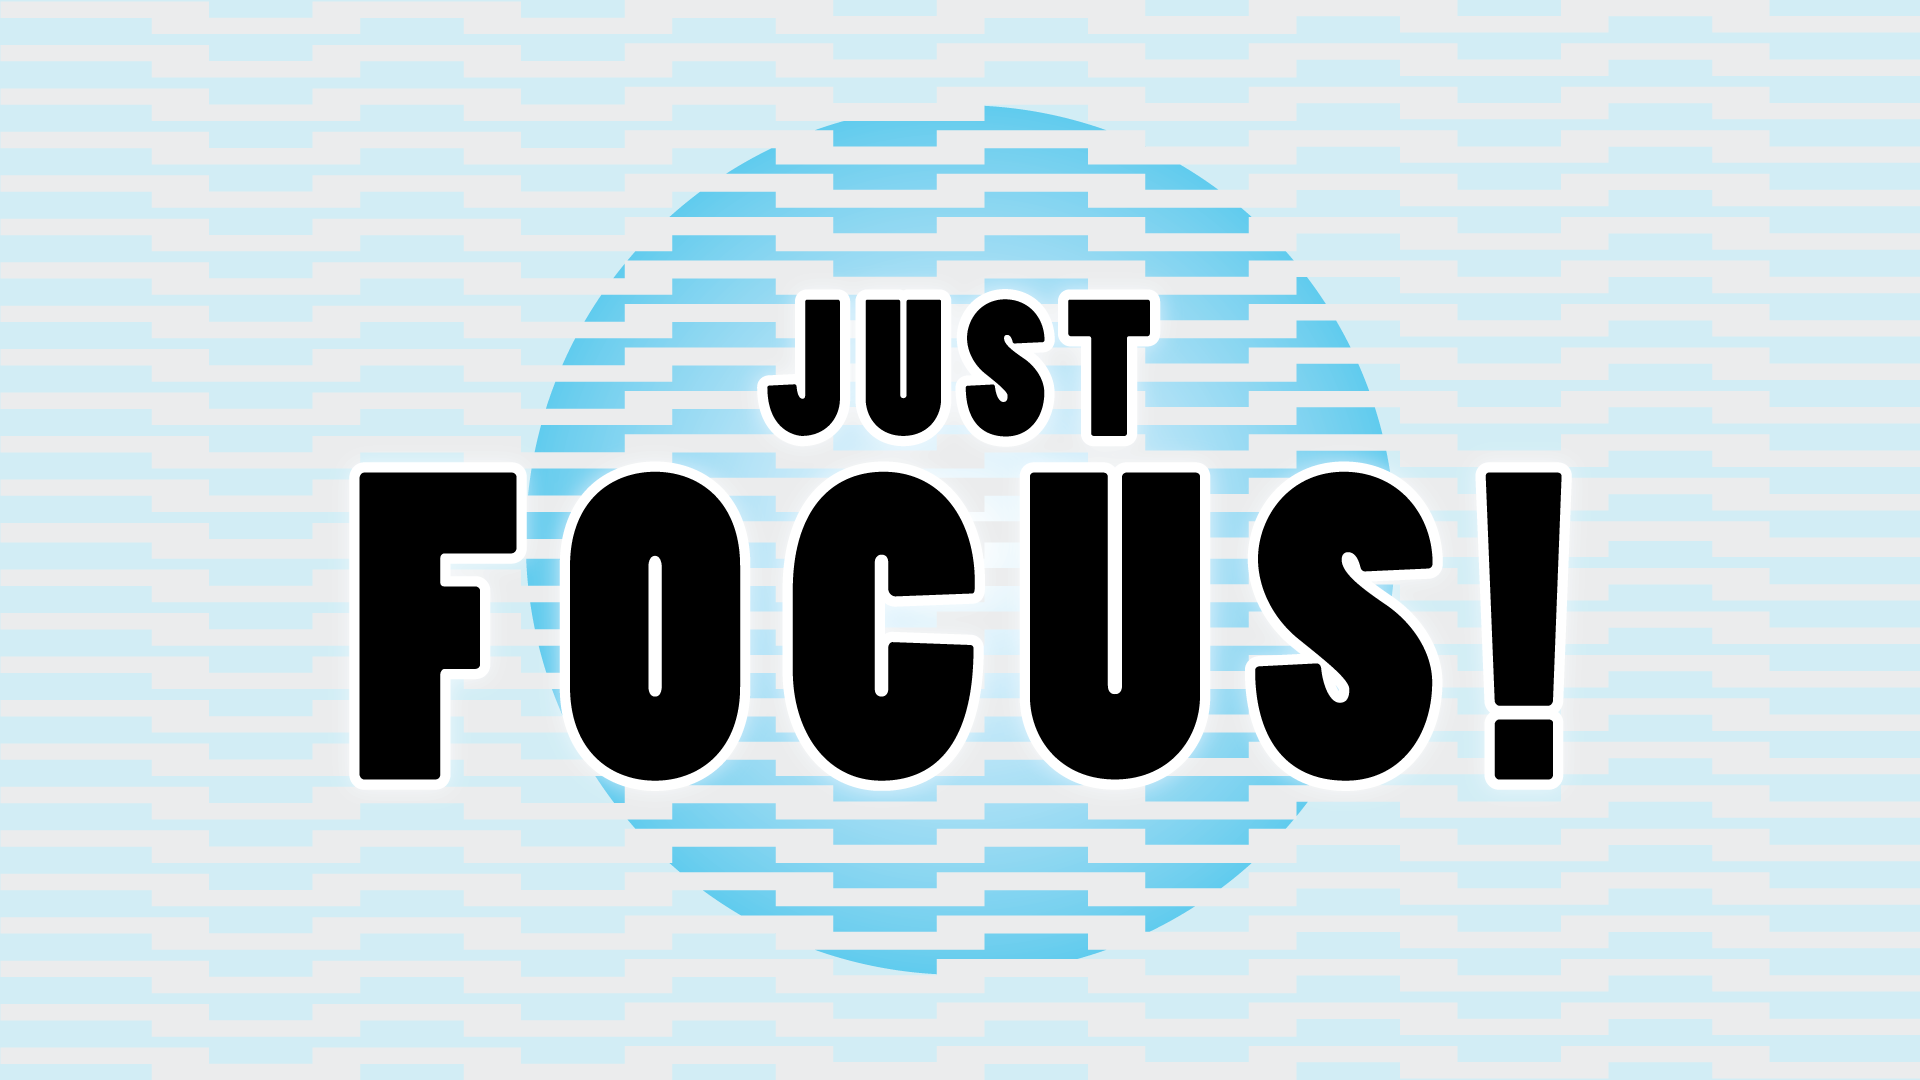 JUST FOCUS!